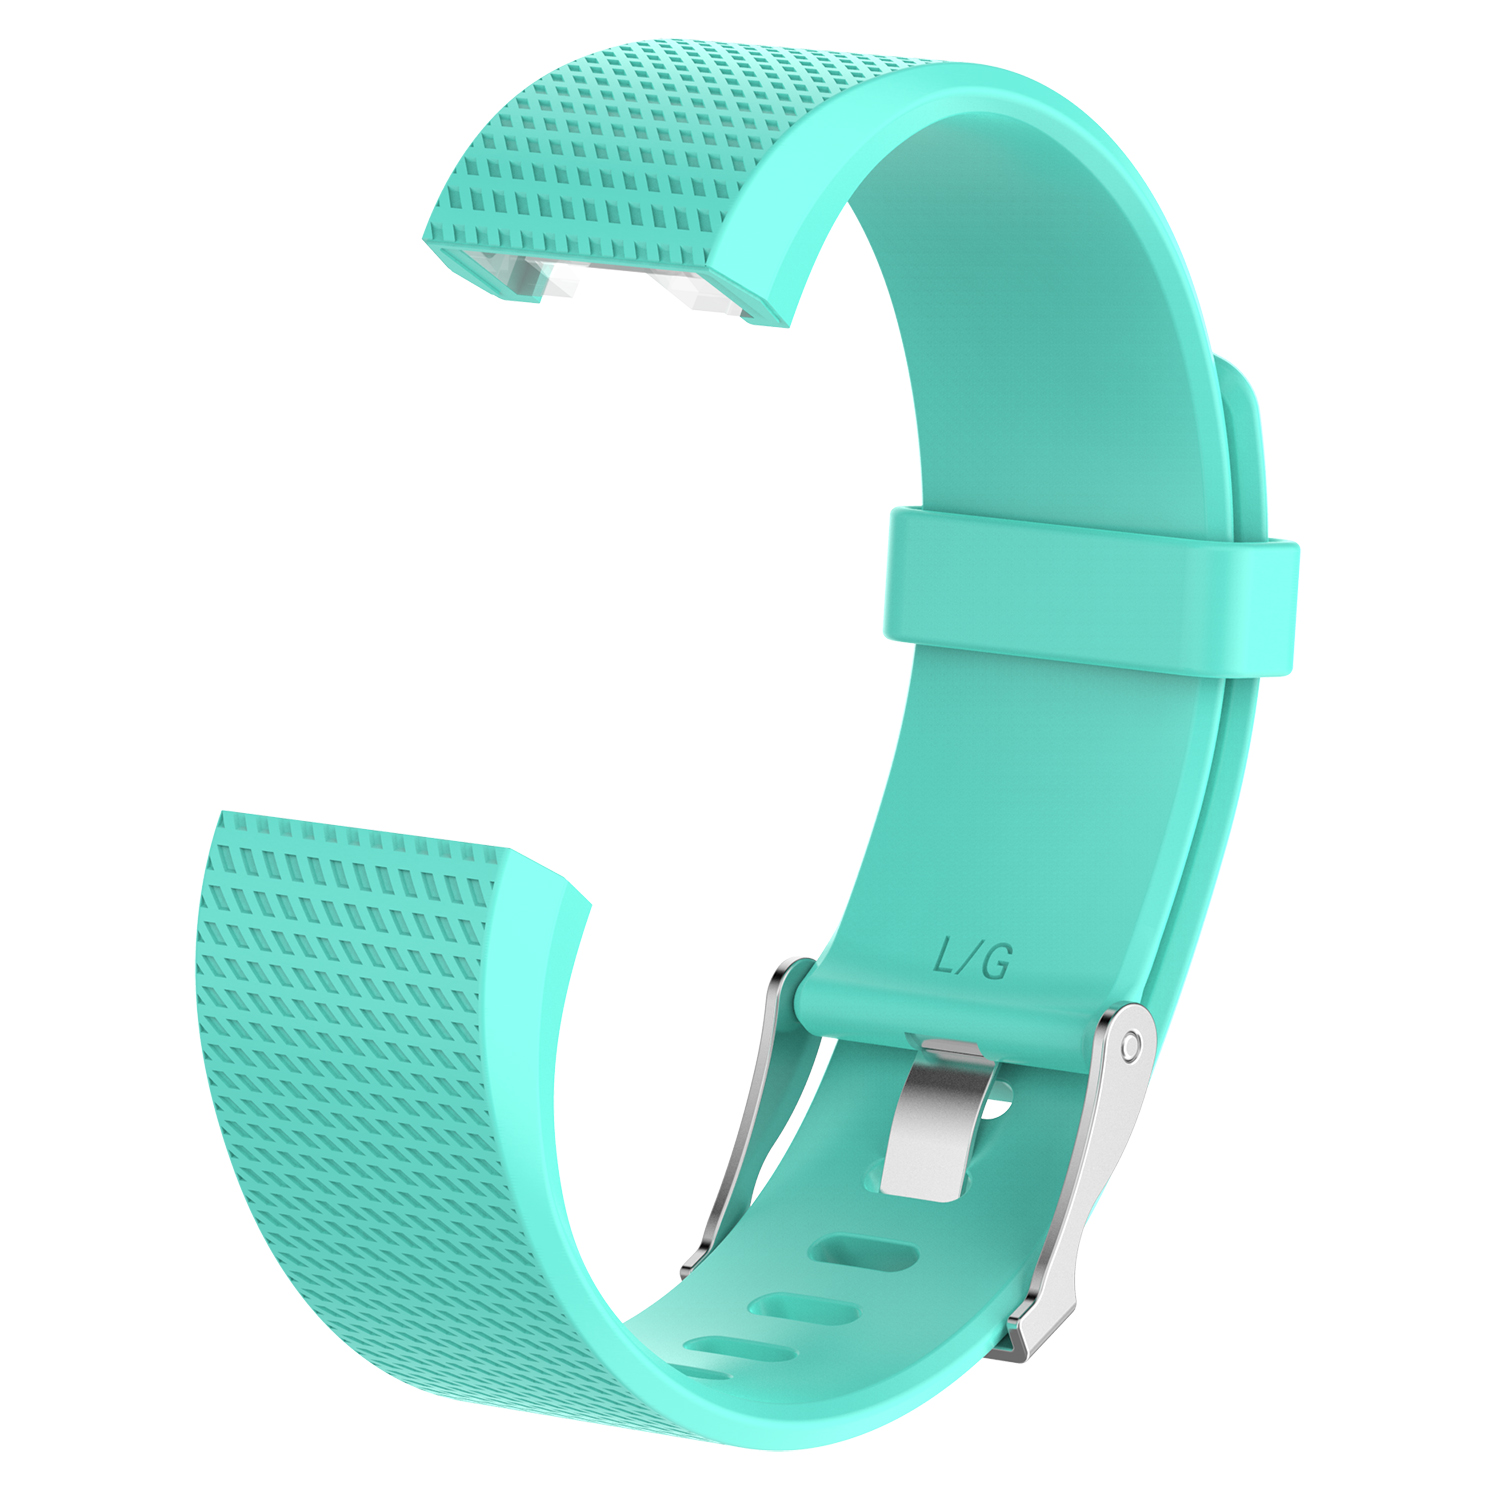 Replacement-Silicone-Wristband-Watch-Strap-Bands-Bracelet-For-Fitbit-Charge-2 thumbnail 47